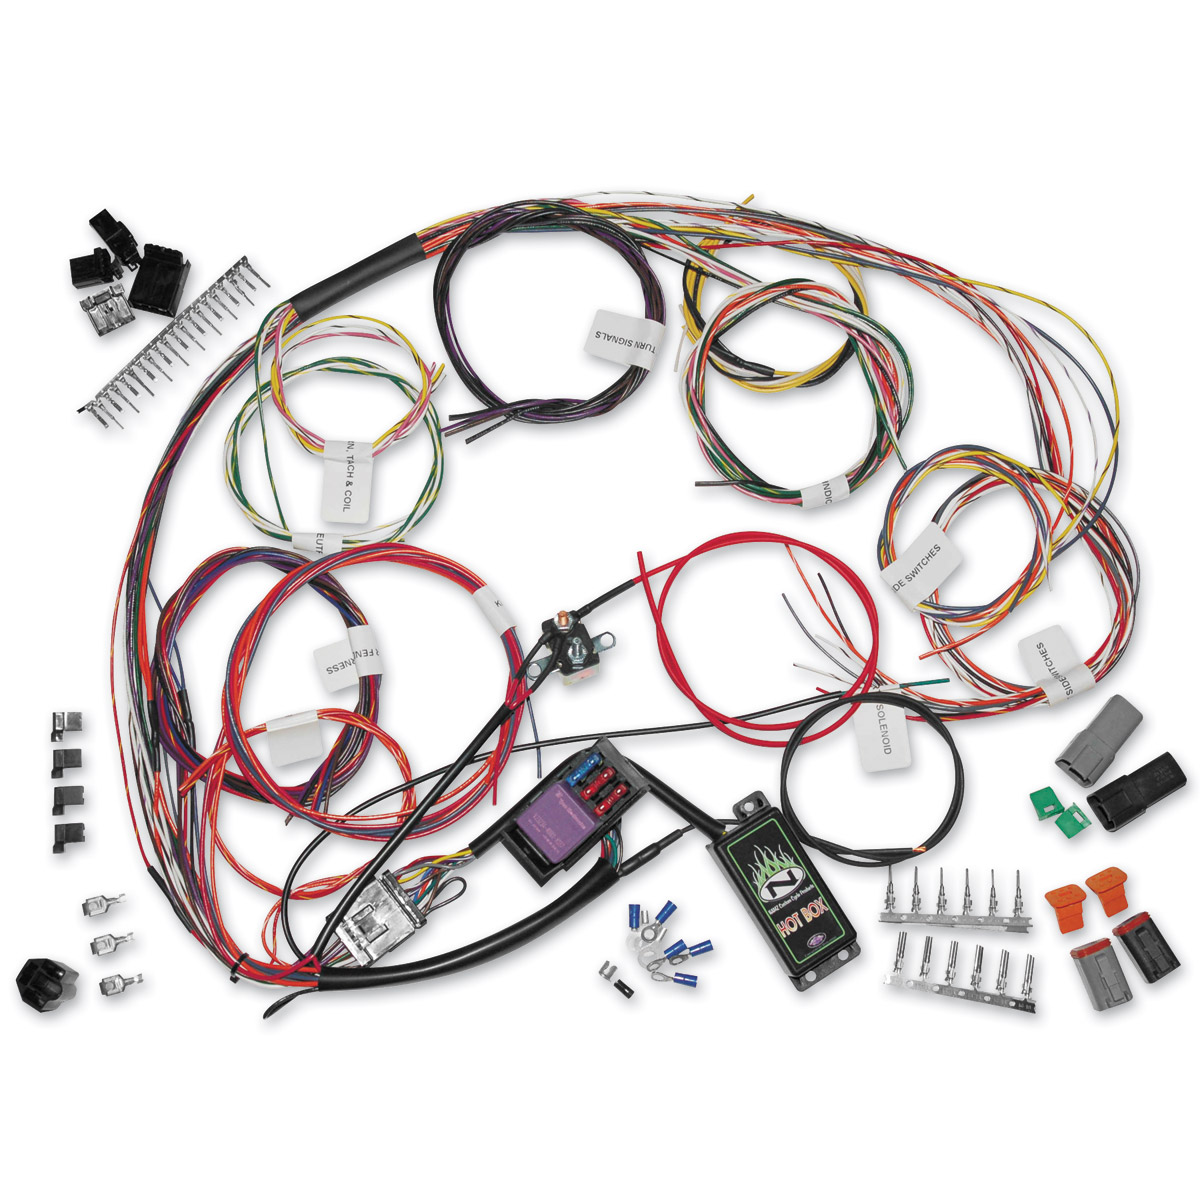 745 072_A namz custom cycle complete bike wiring harness kit 745 072 j&p ironhead wiring harness at gsmportal.co